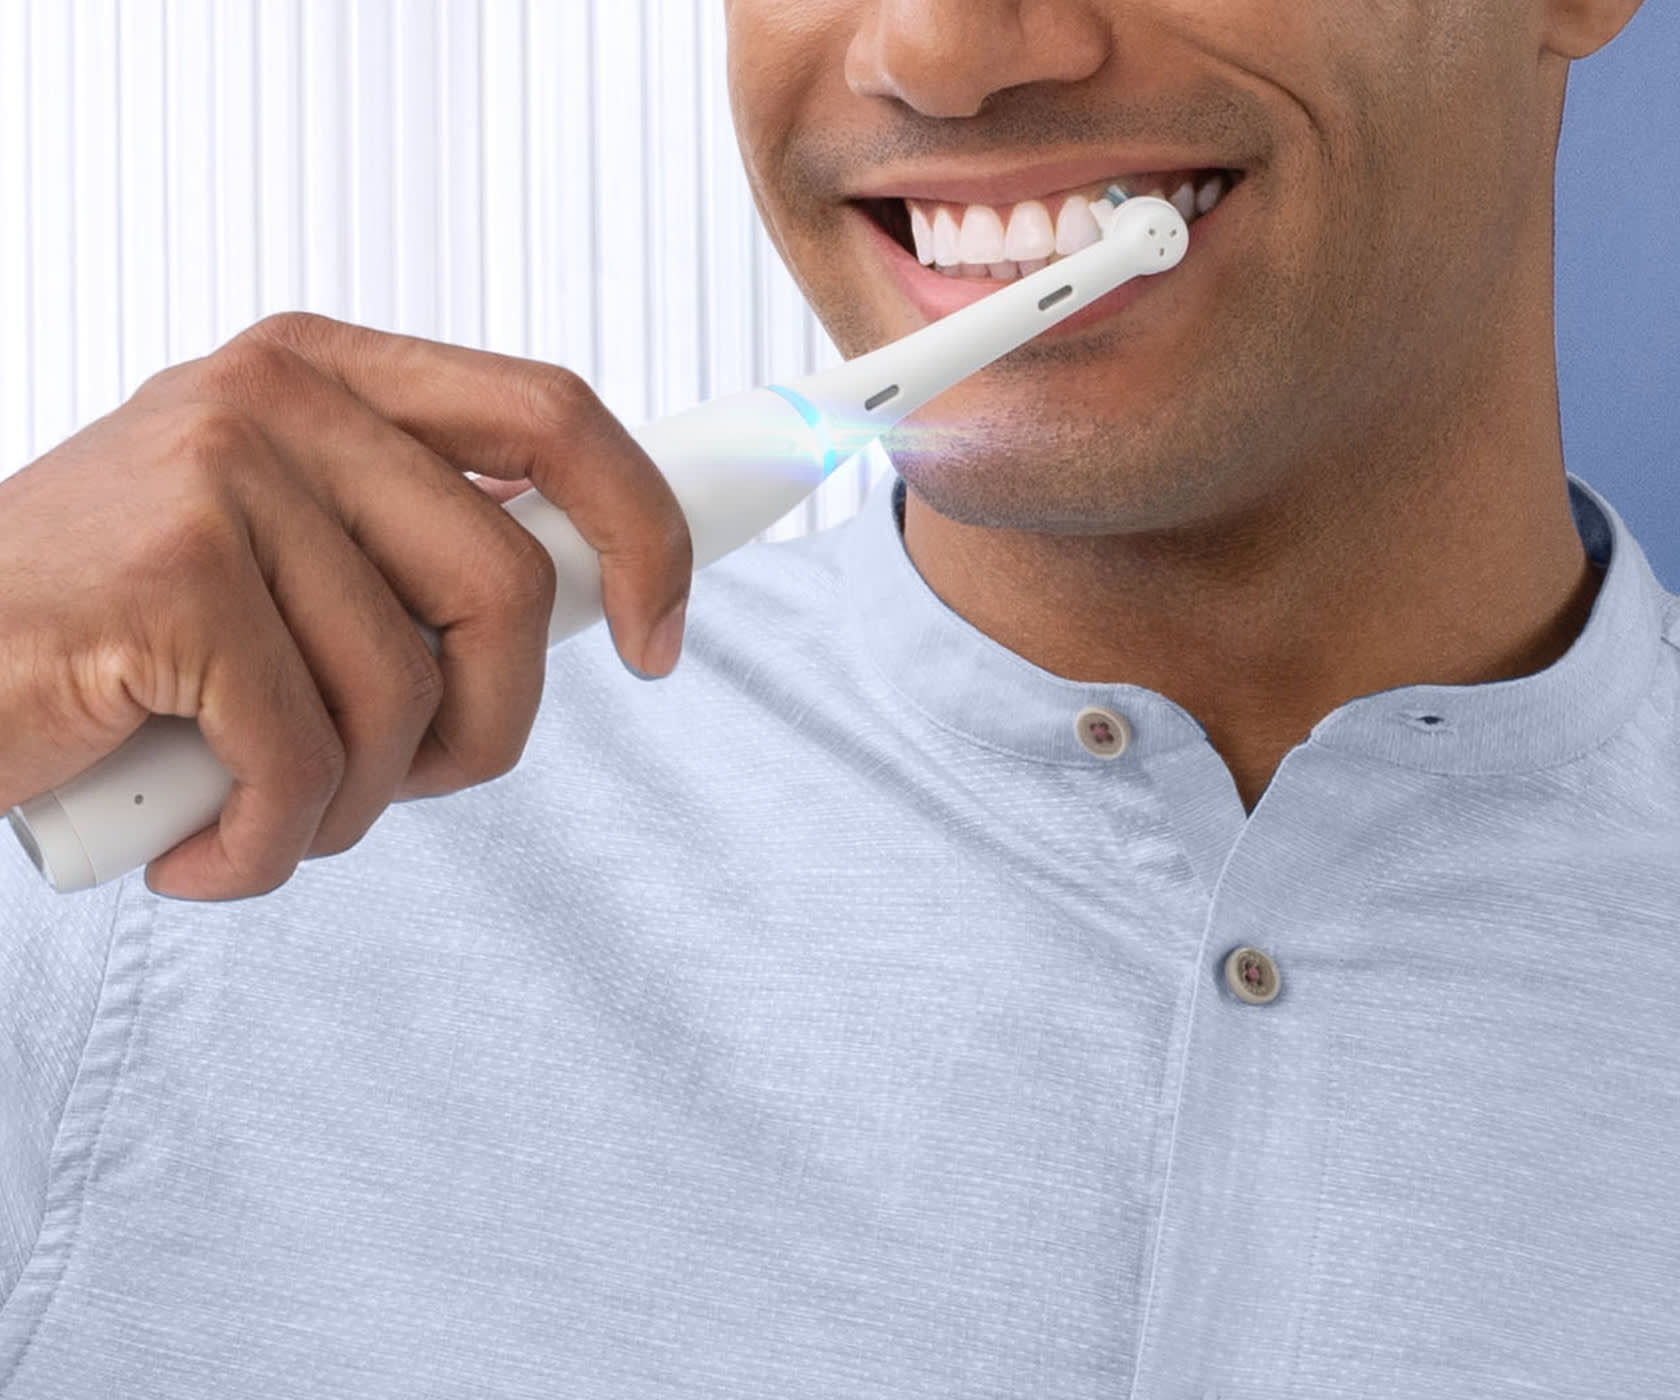 Man brushing his teeth with Oral-B's iO Series 7 electric white toothbrush